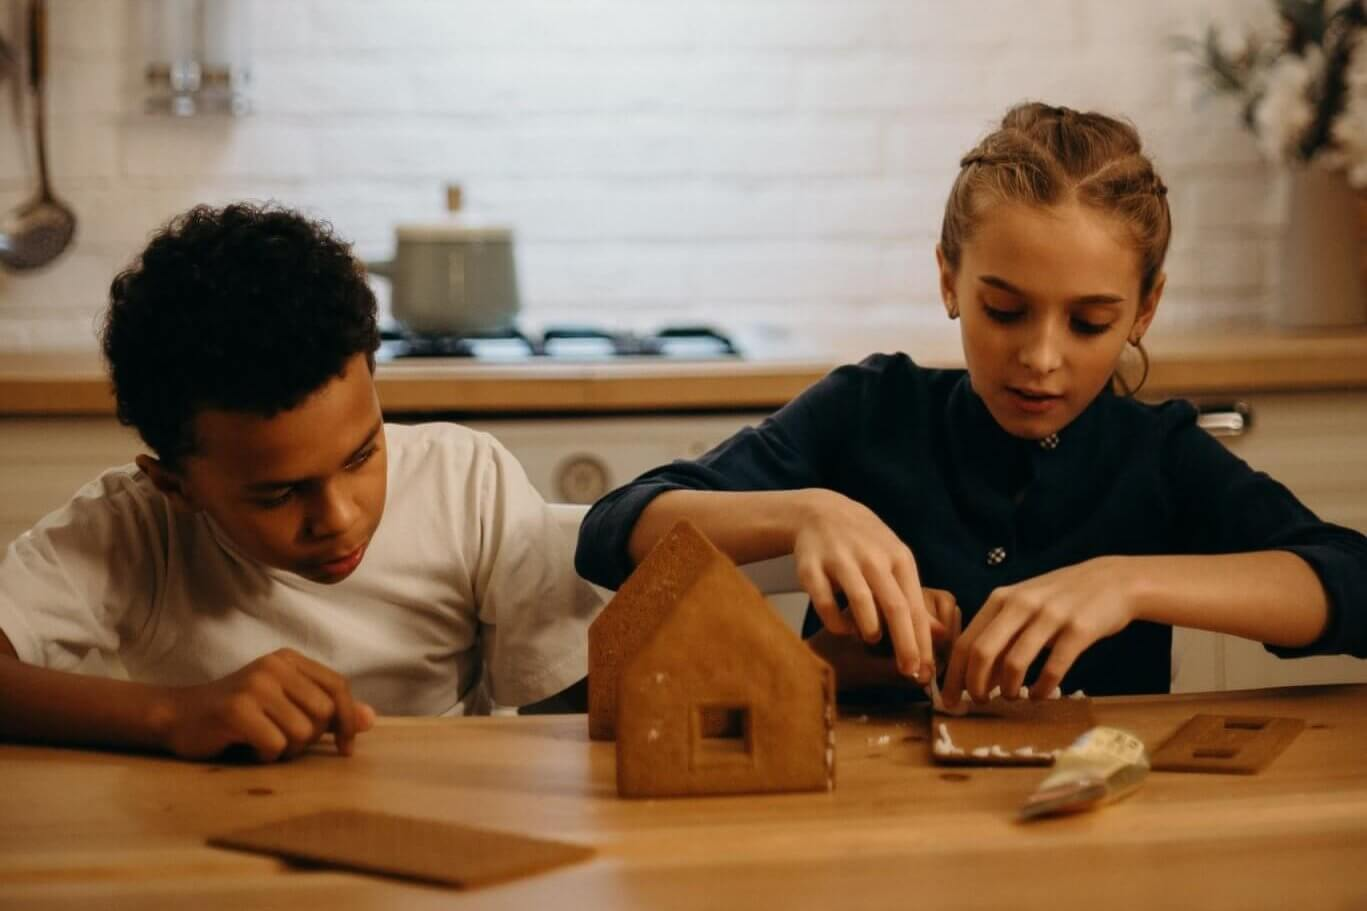 boy-and-girl-making-a-bird-house-3171393